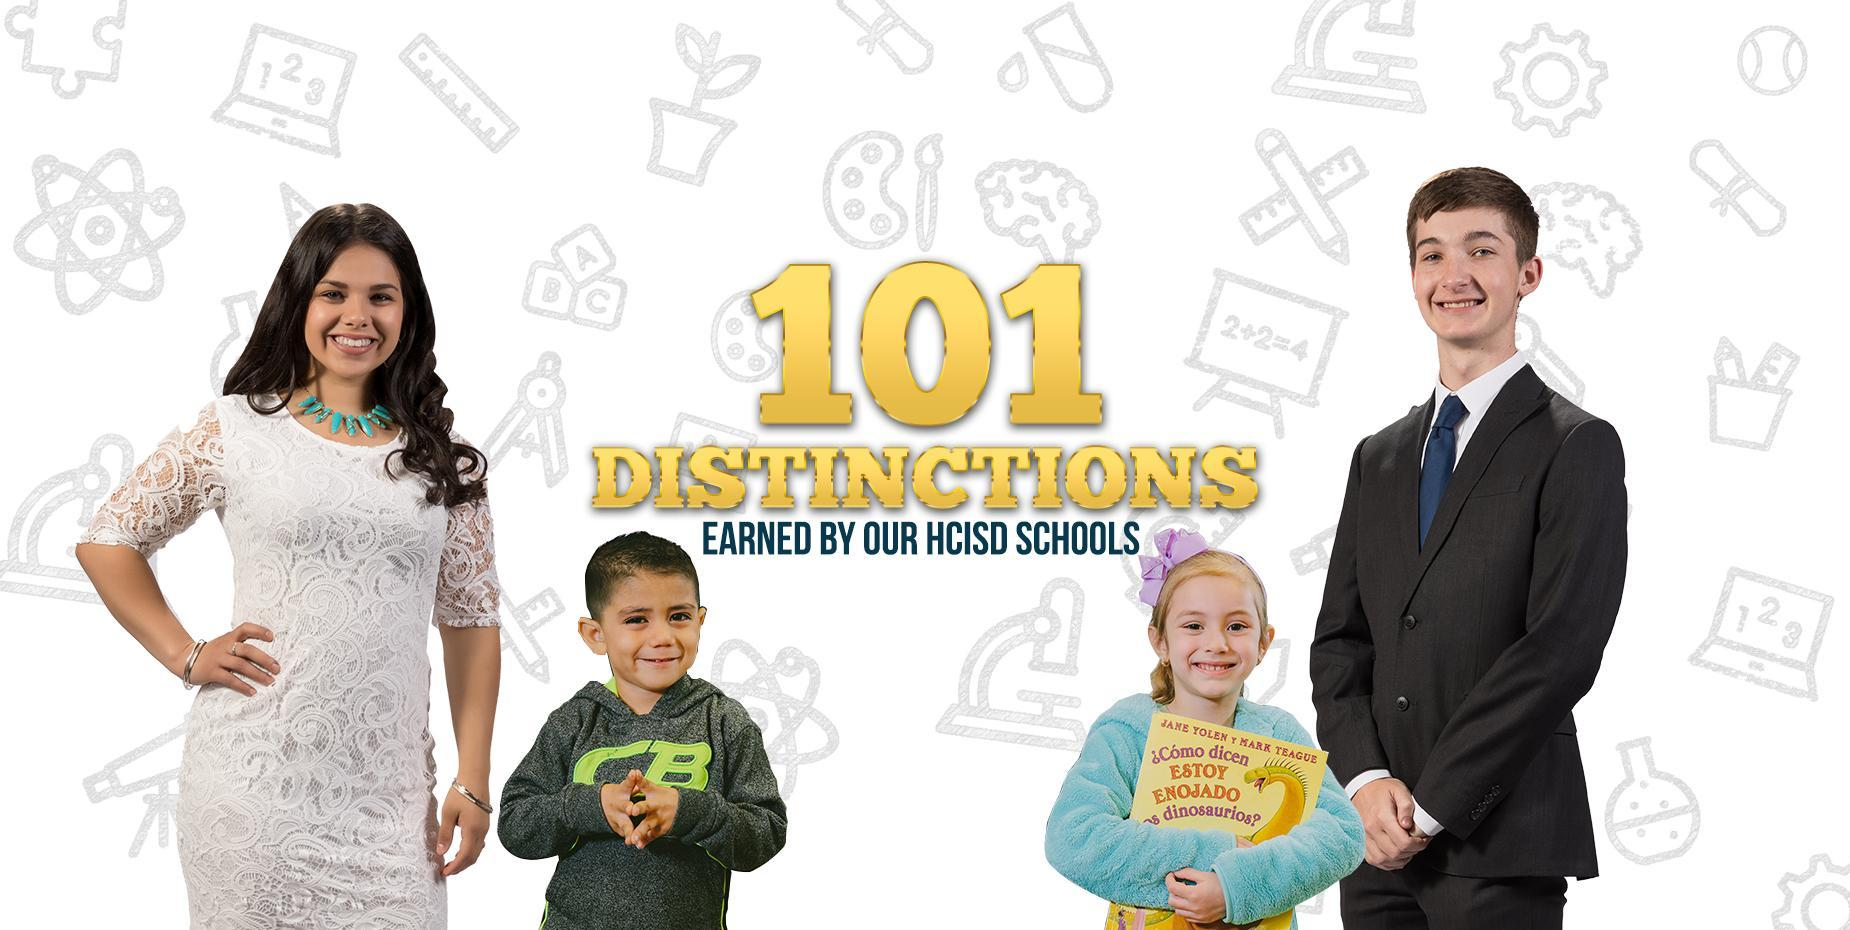 101 distinctions earned by our HCISD schools